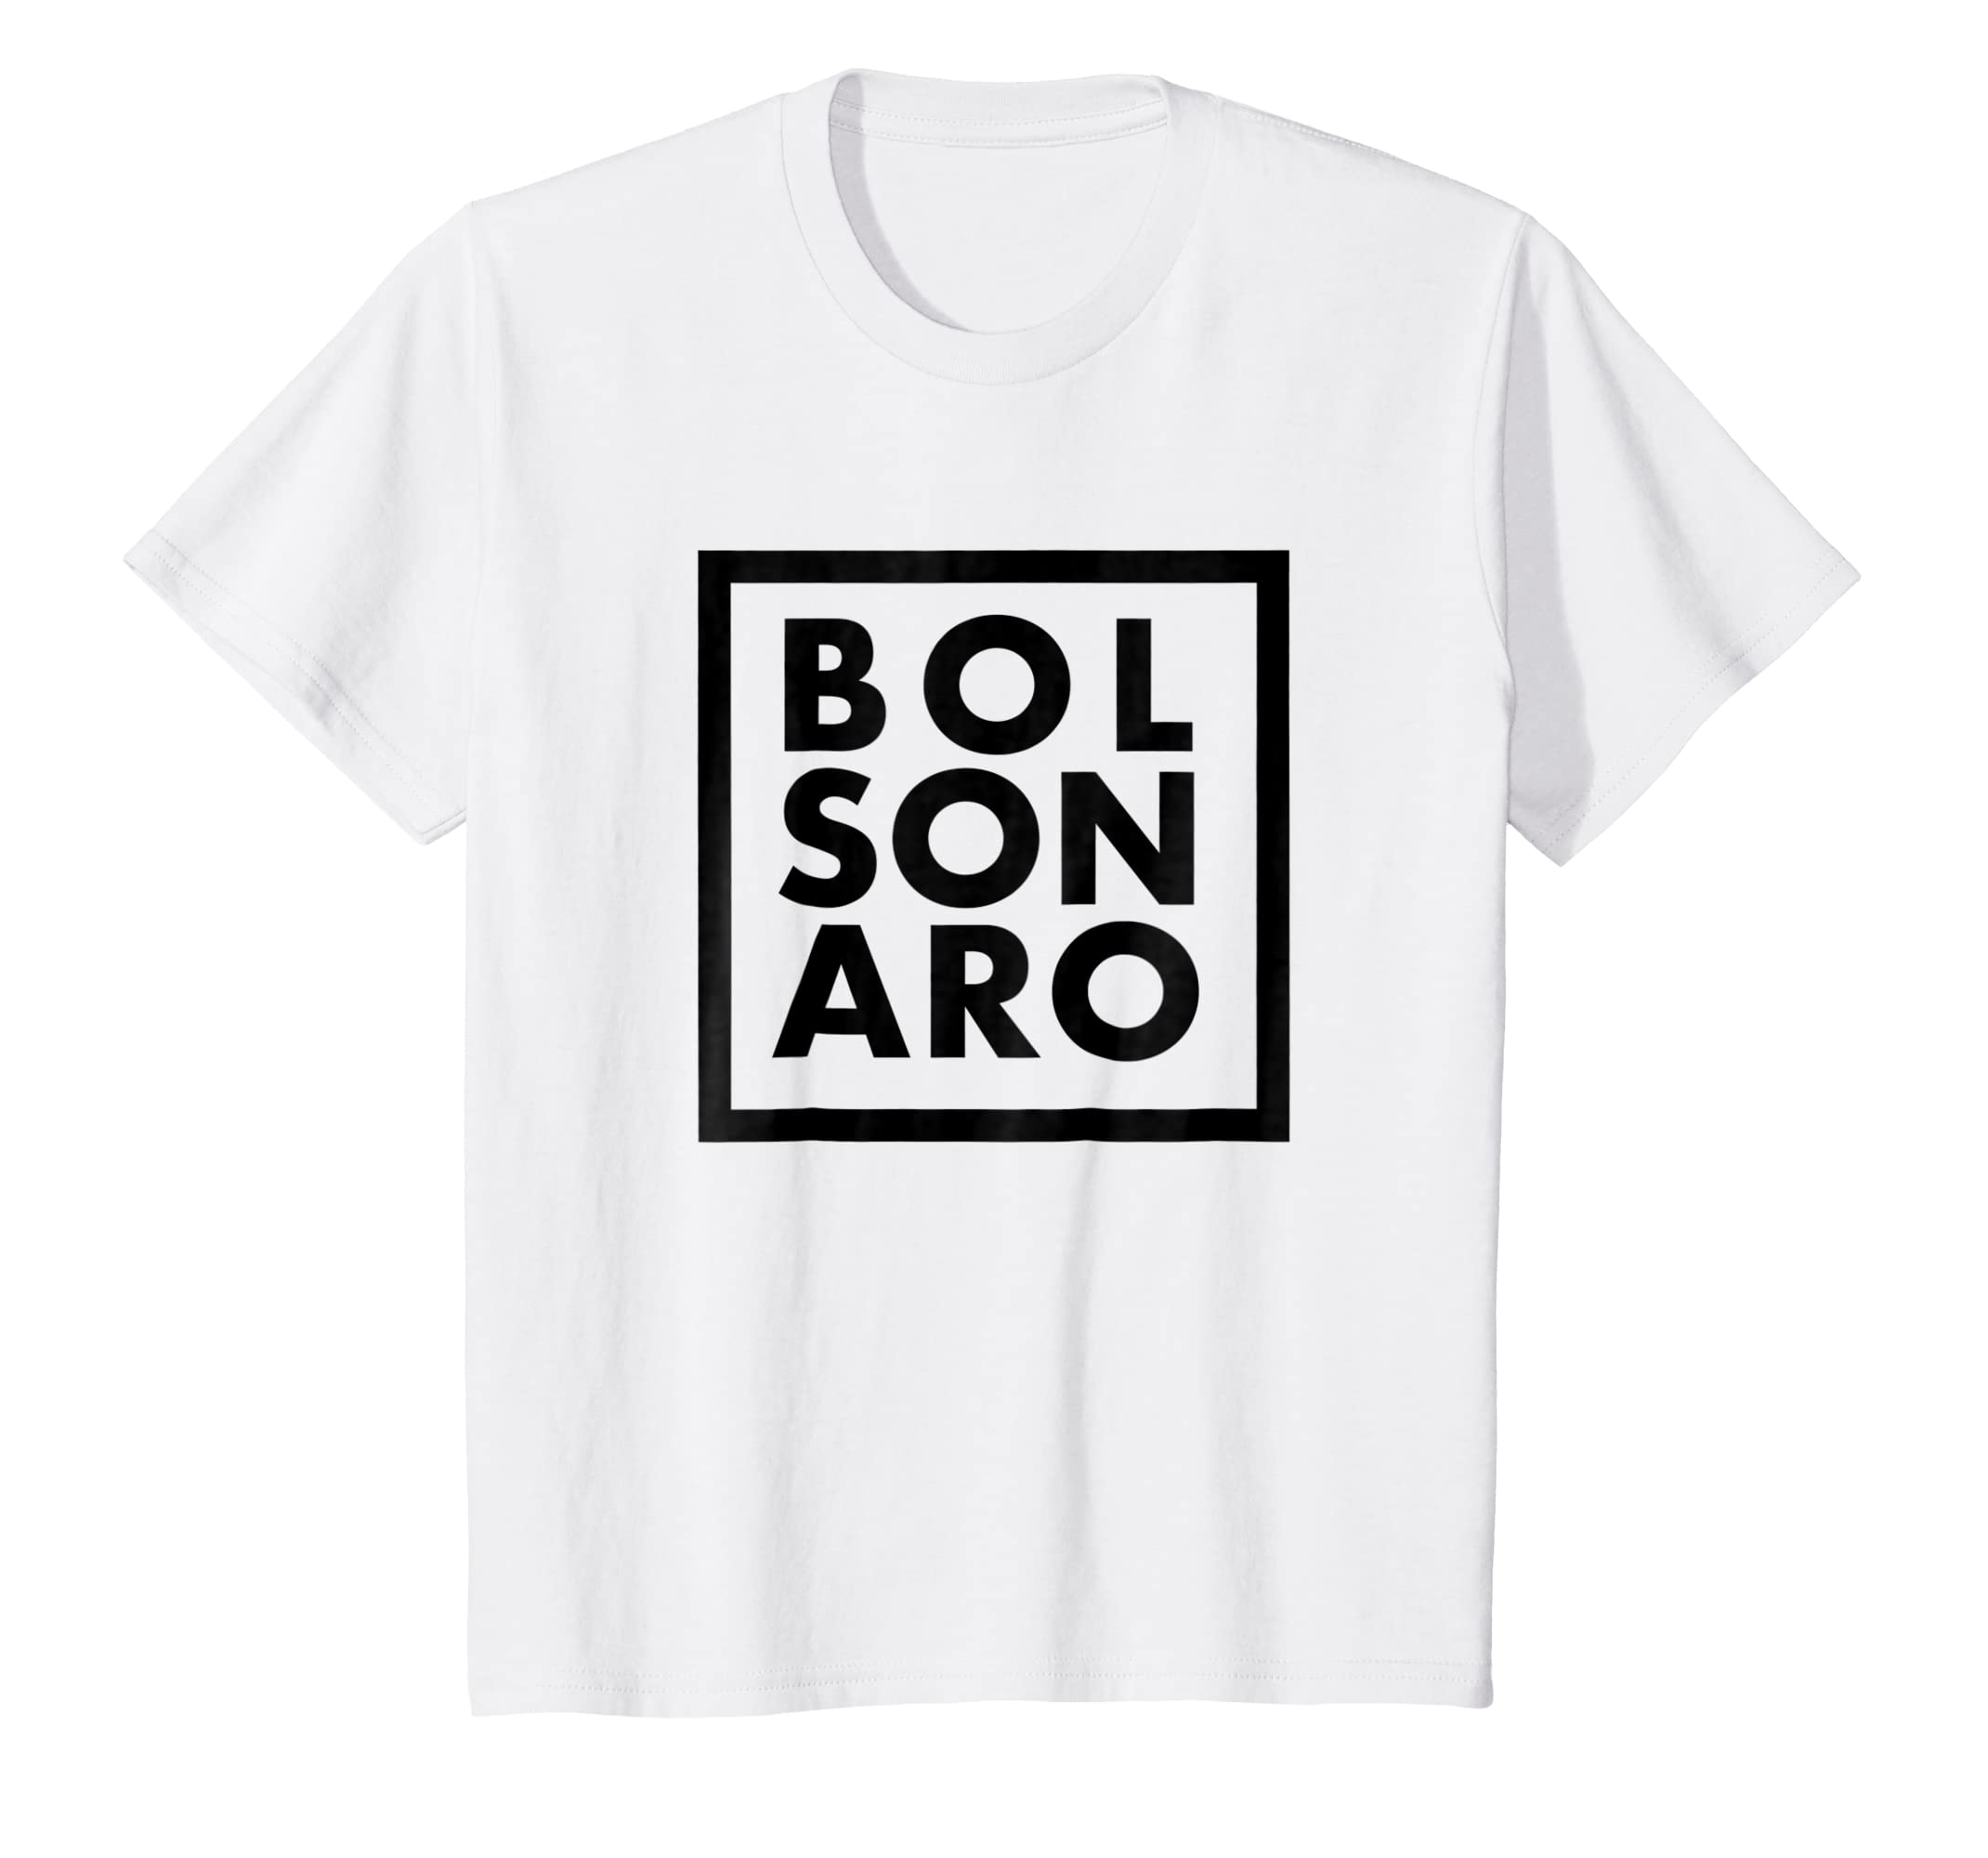 Amazon.com: Bolsonaro Shirt, Bolsonaro Presidente 2018 Camiseta: Clothing